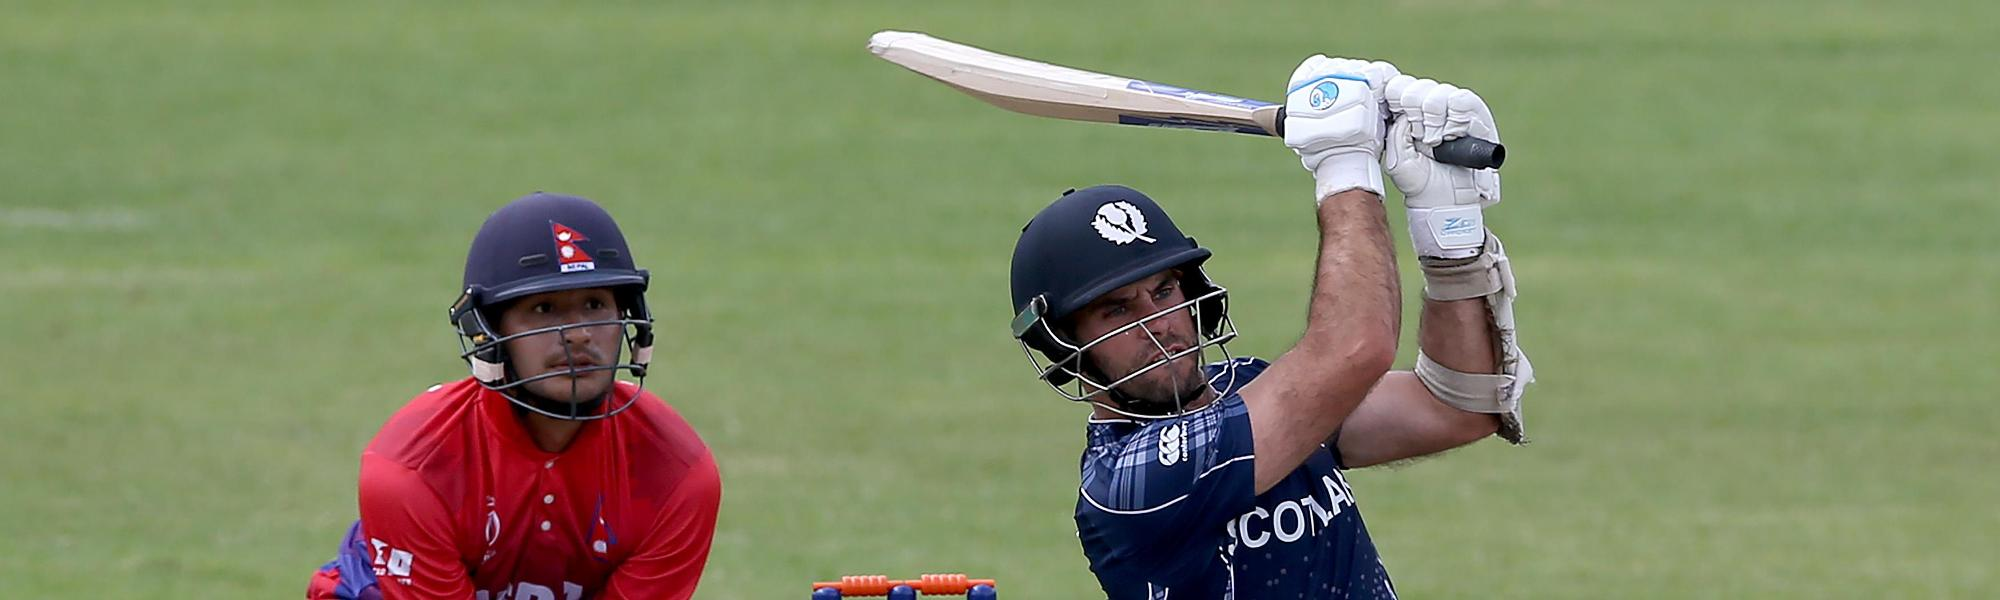 Kyle Coetzer, batting for Scotland